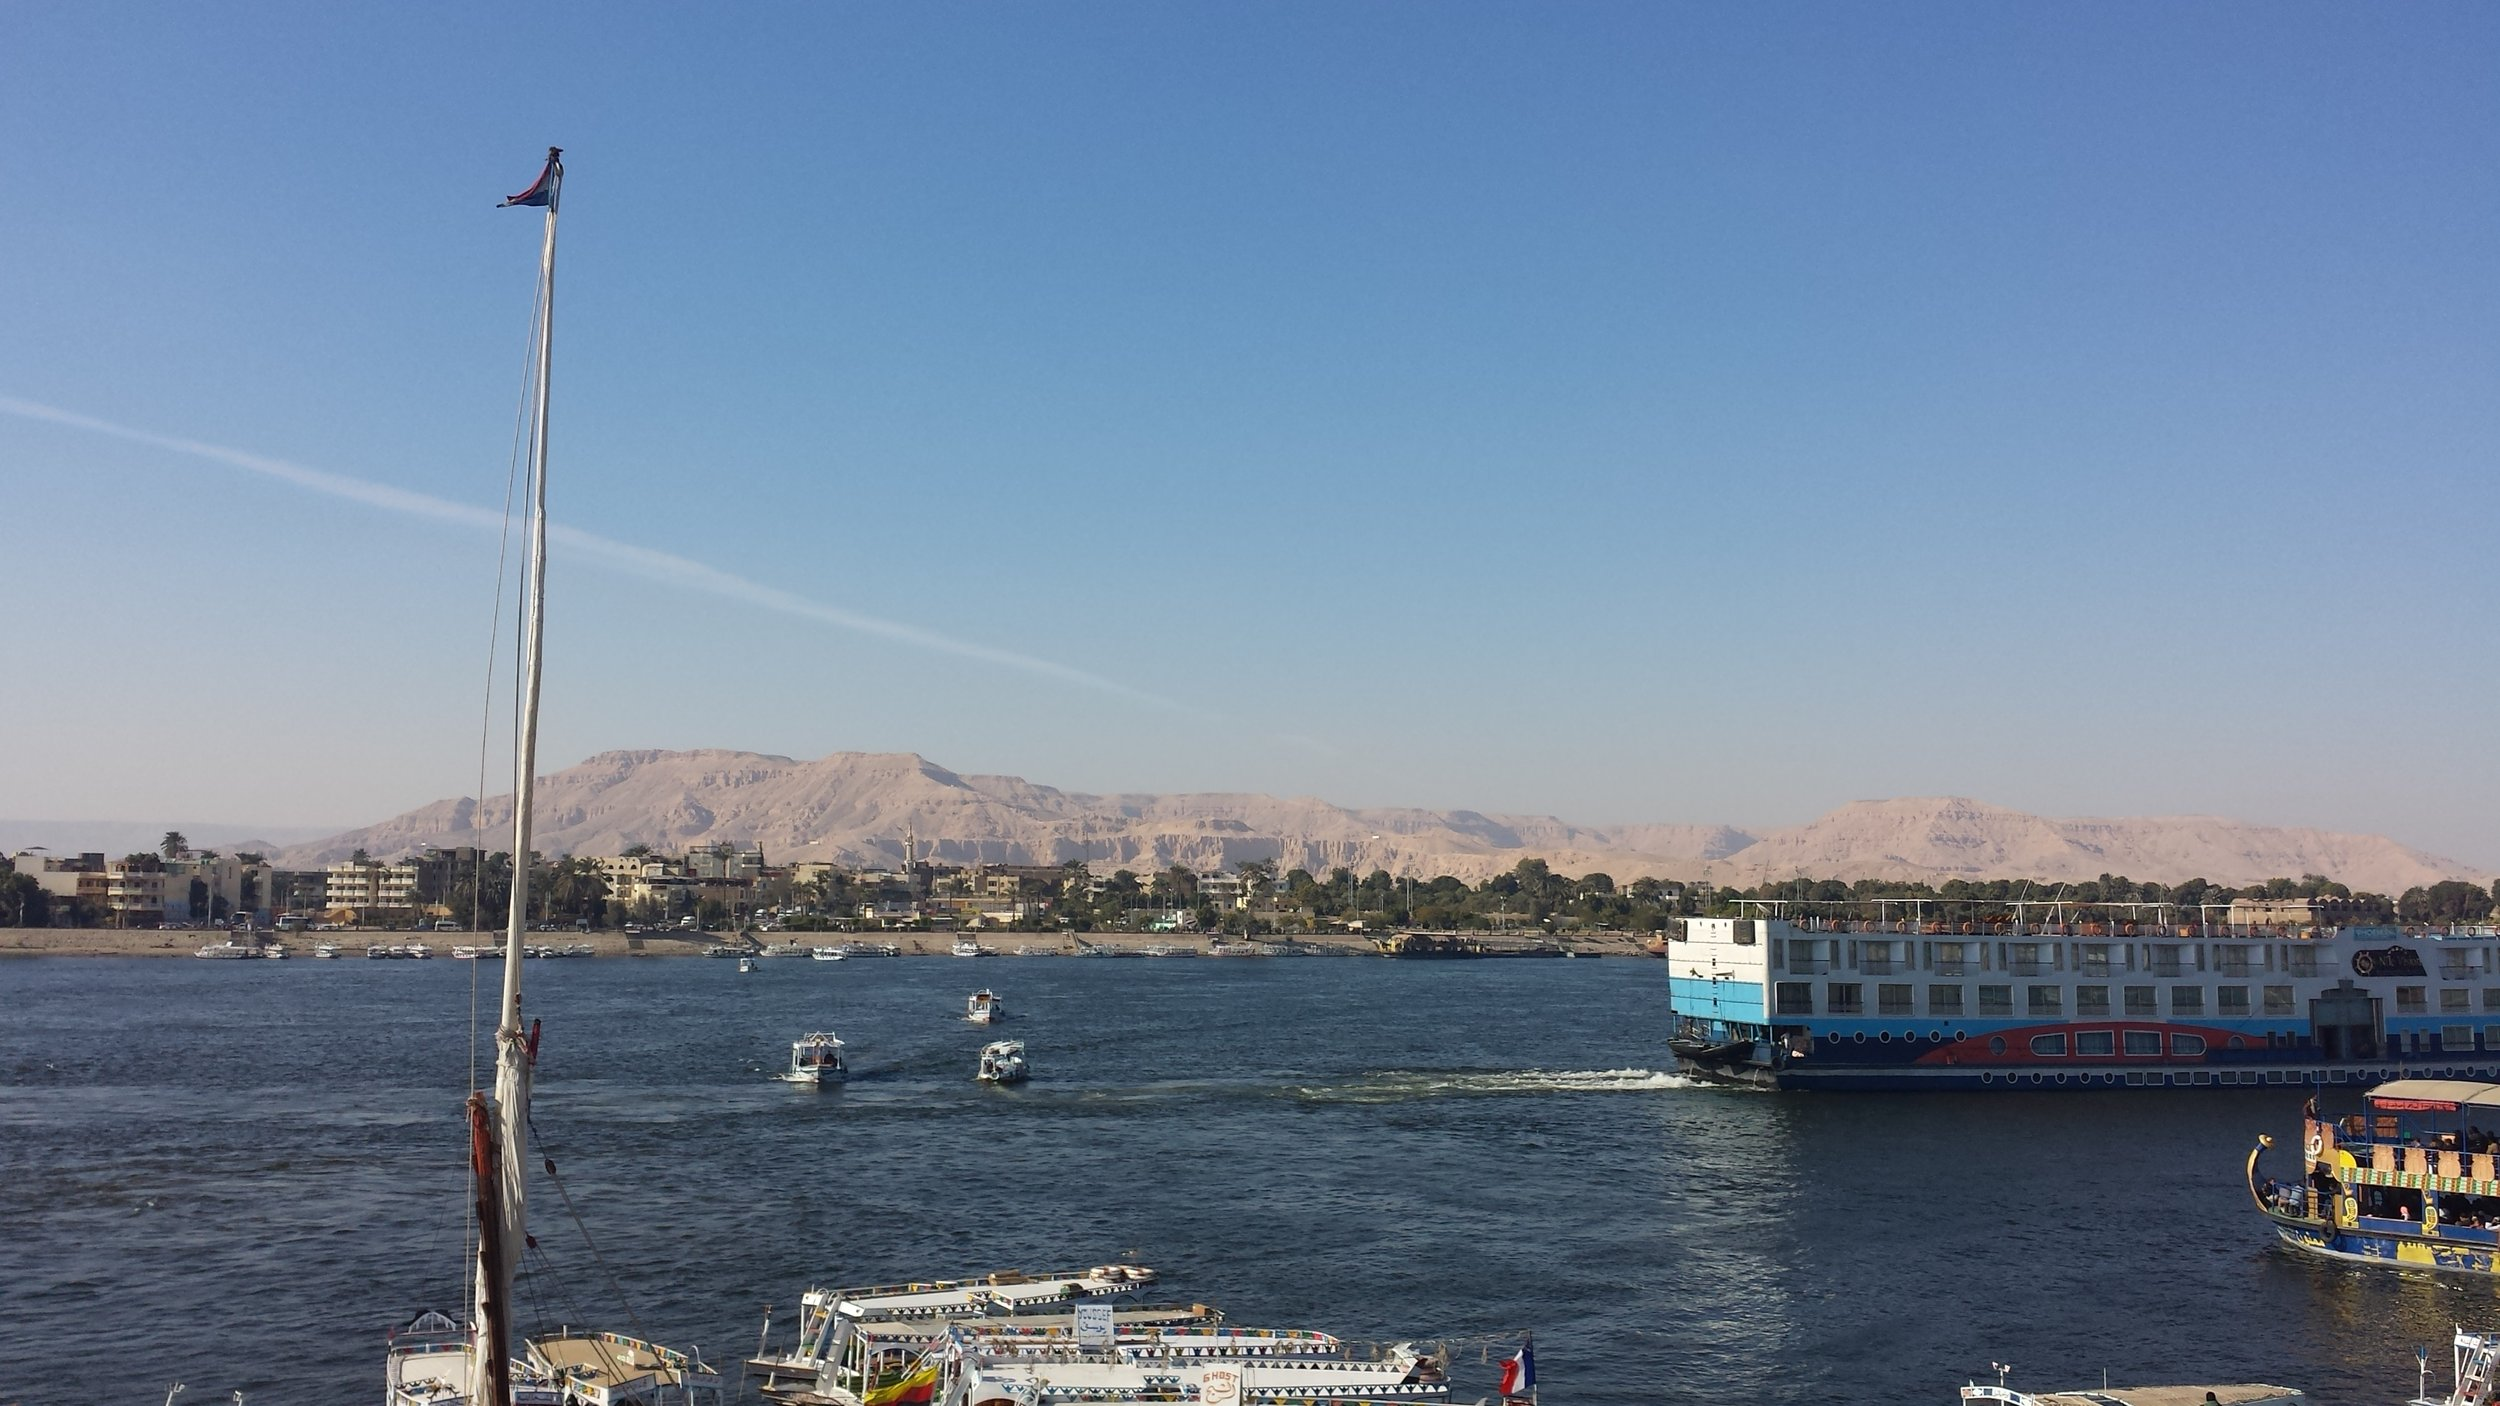 A view of Luxor's west bank from across the Nile. Those hills are where all the tombs are.